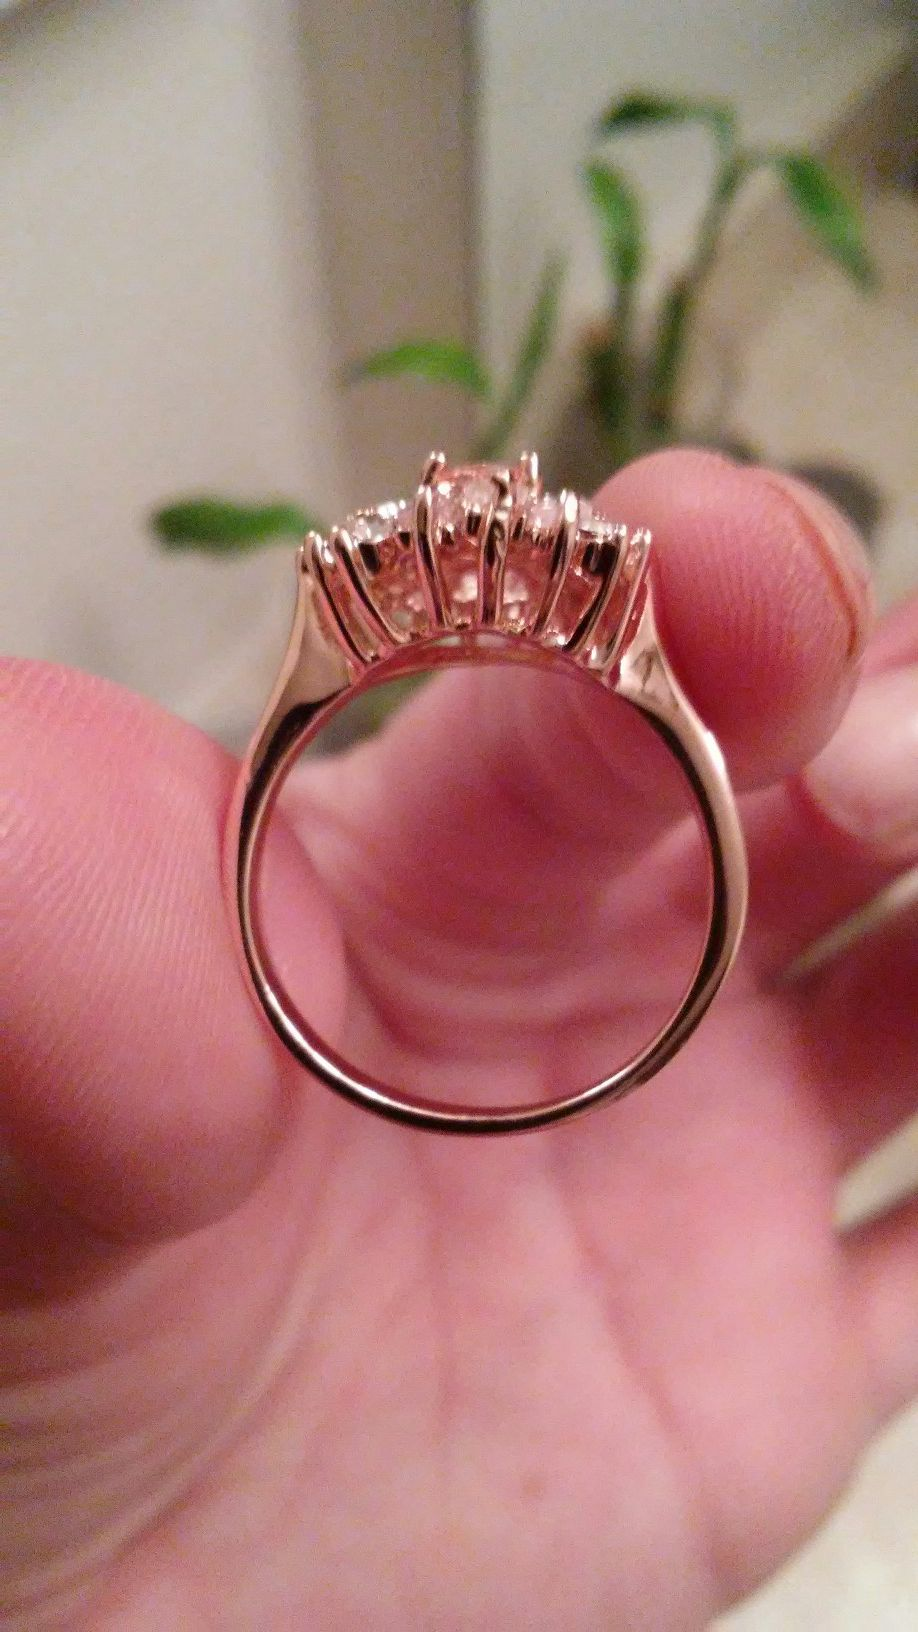 Ring size 9